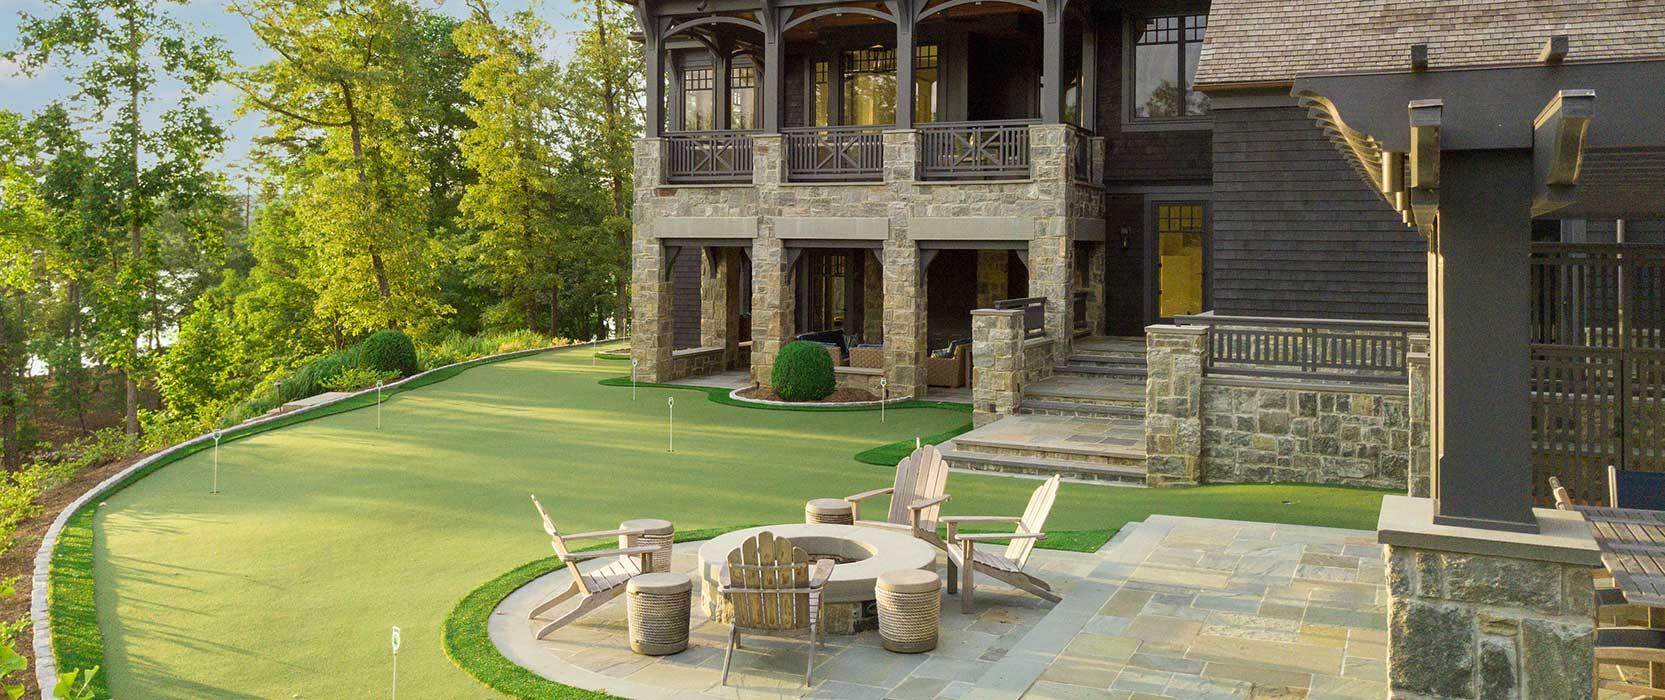 putting green next to a house